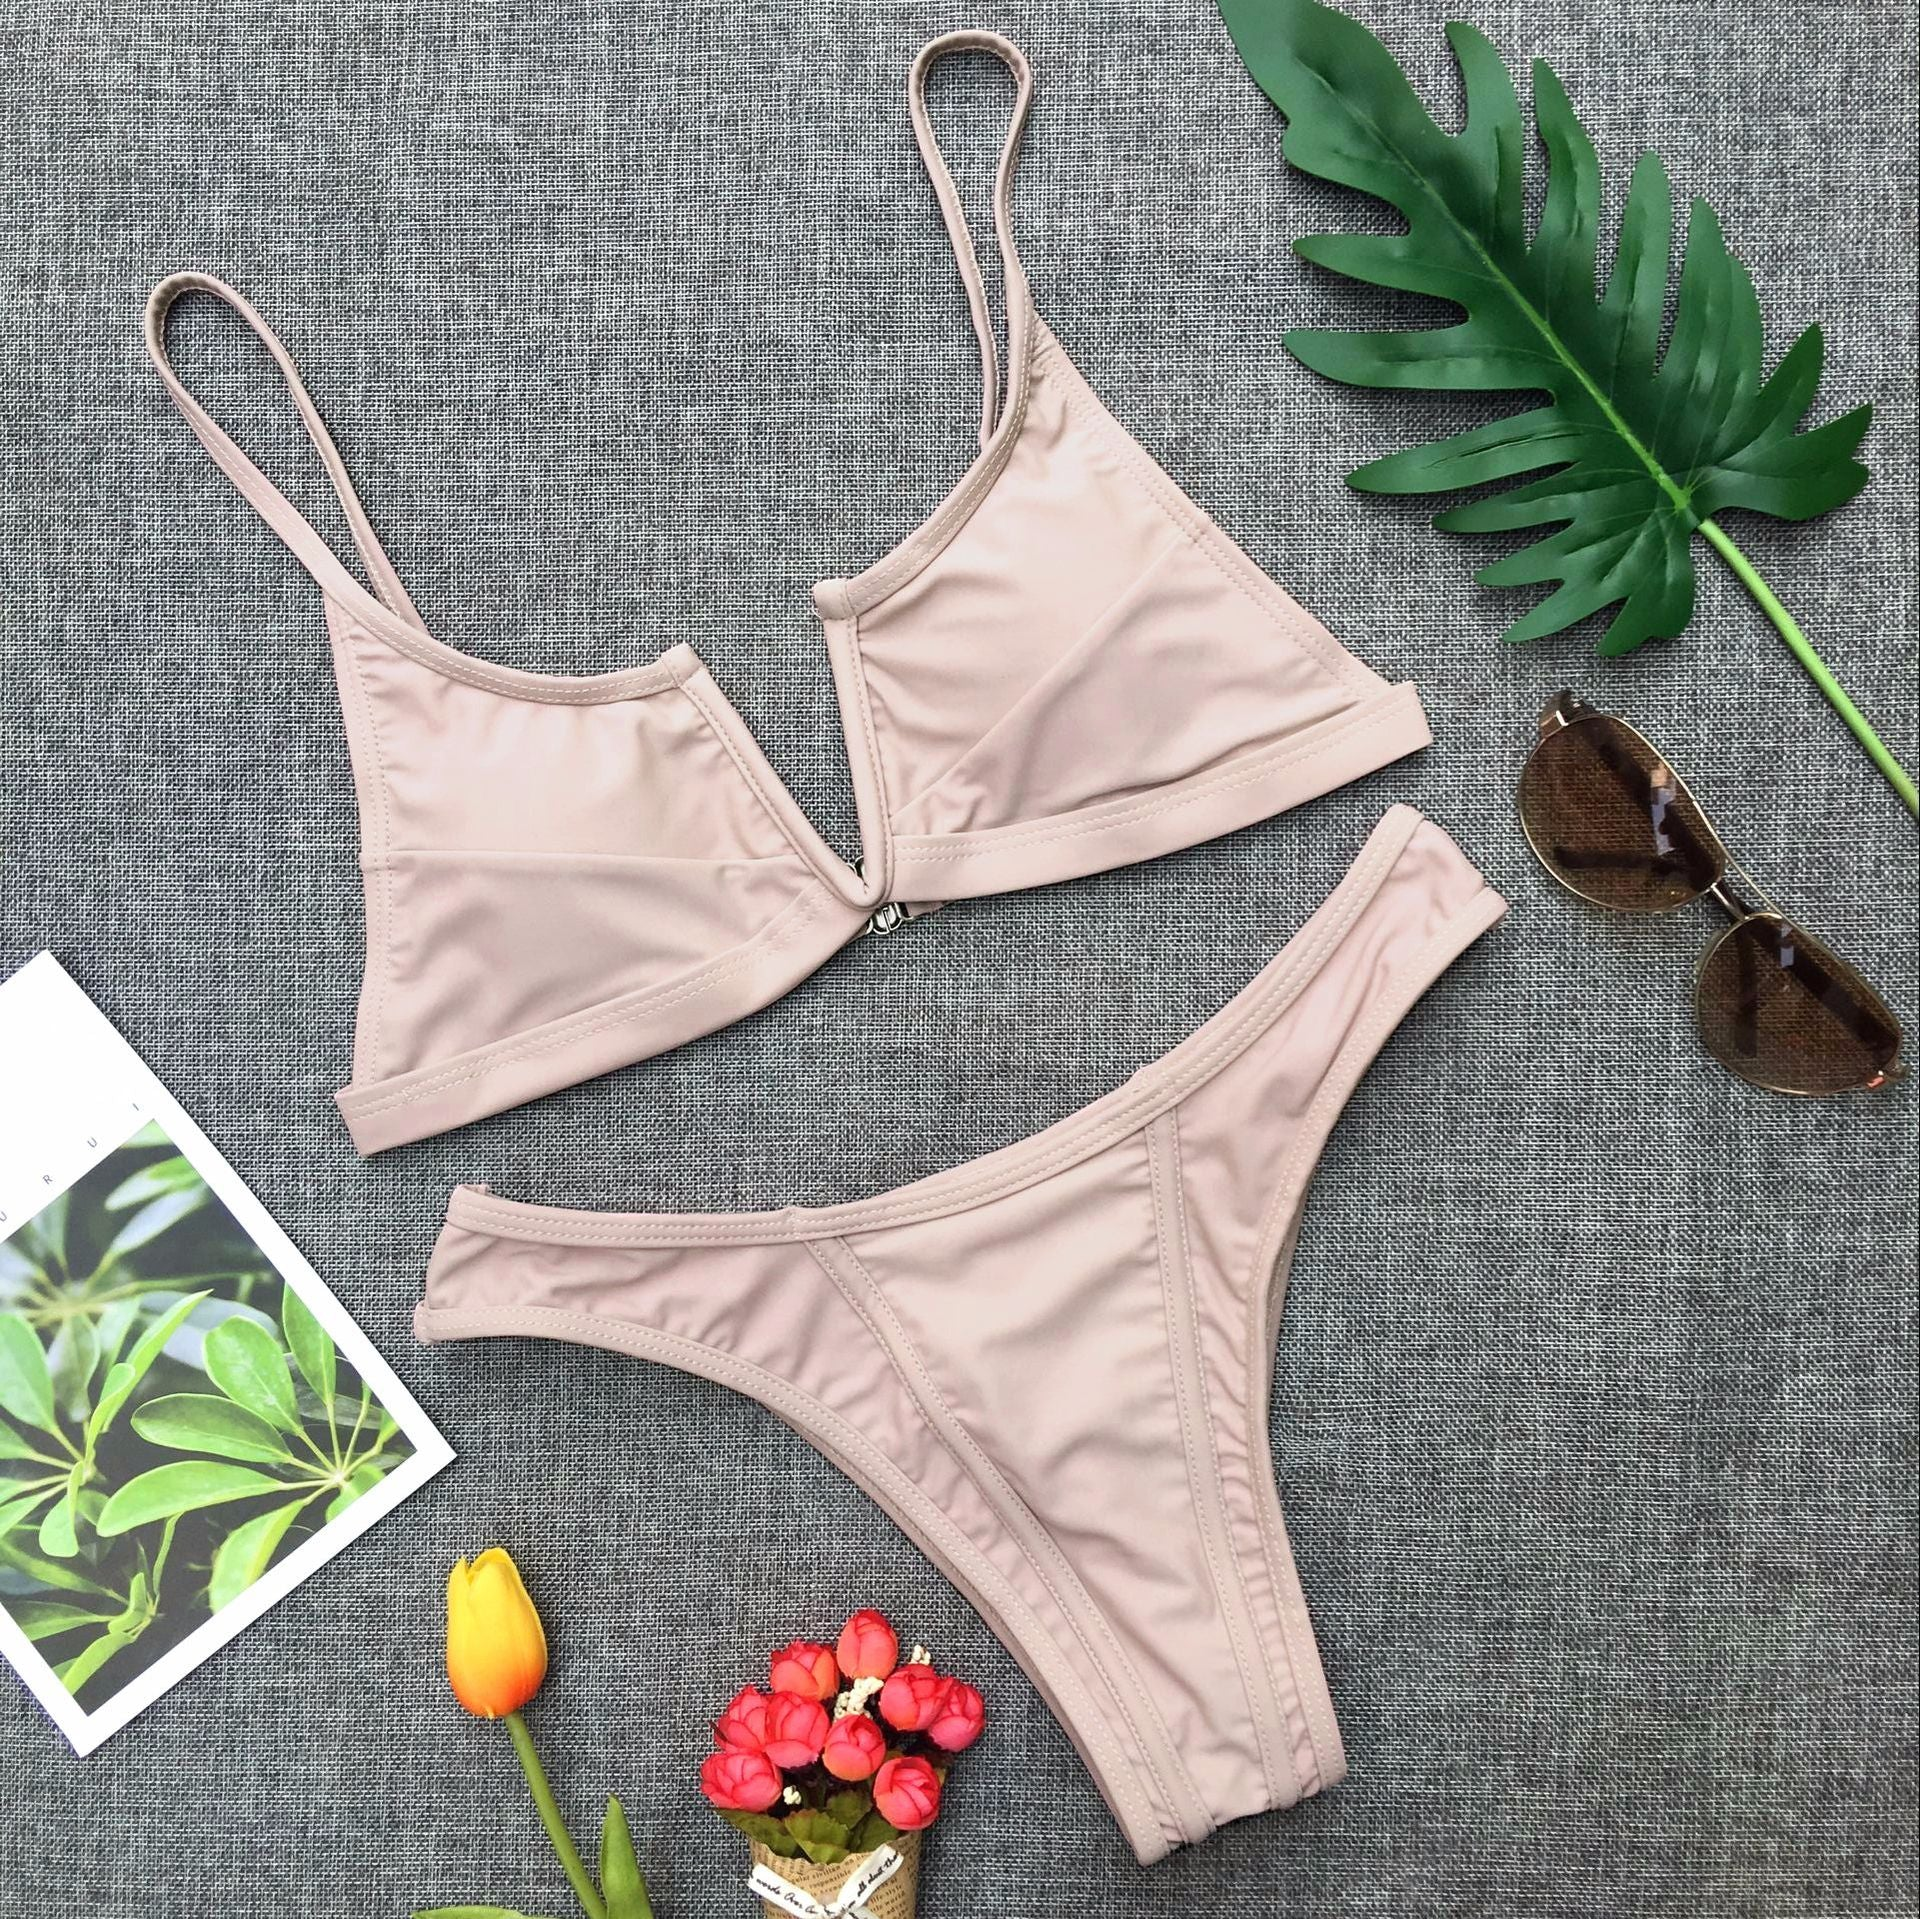 Rho Bikini Set by Designer Ariel Sarah - HOT!!